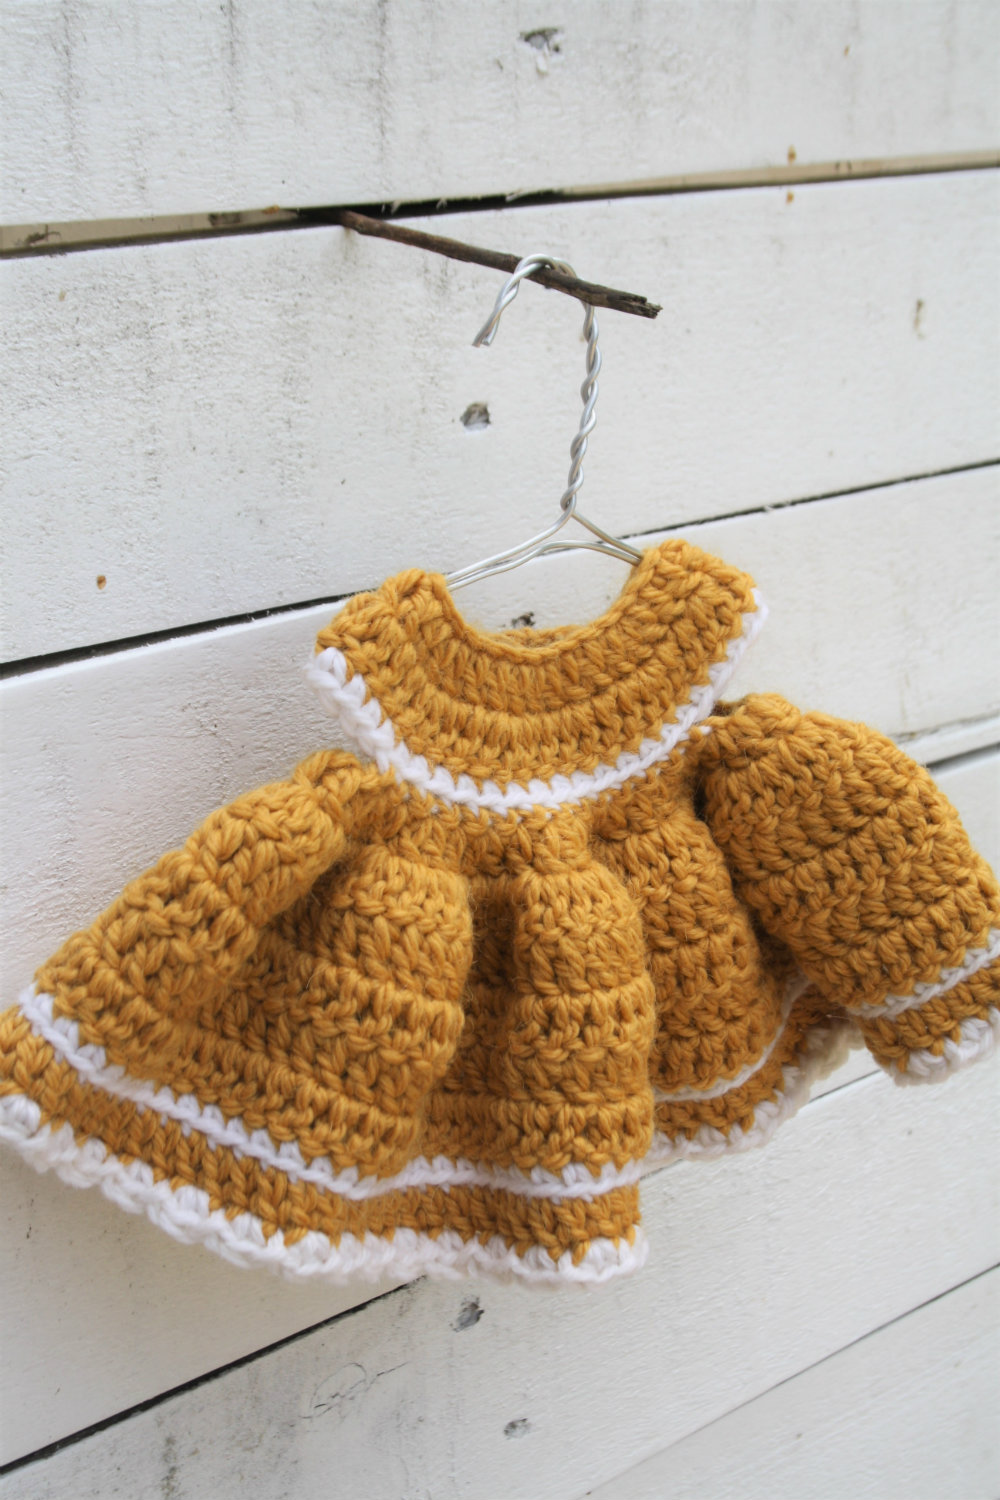 Crochet dress for dolls - hellostitches xo | 1500x1000